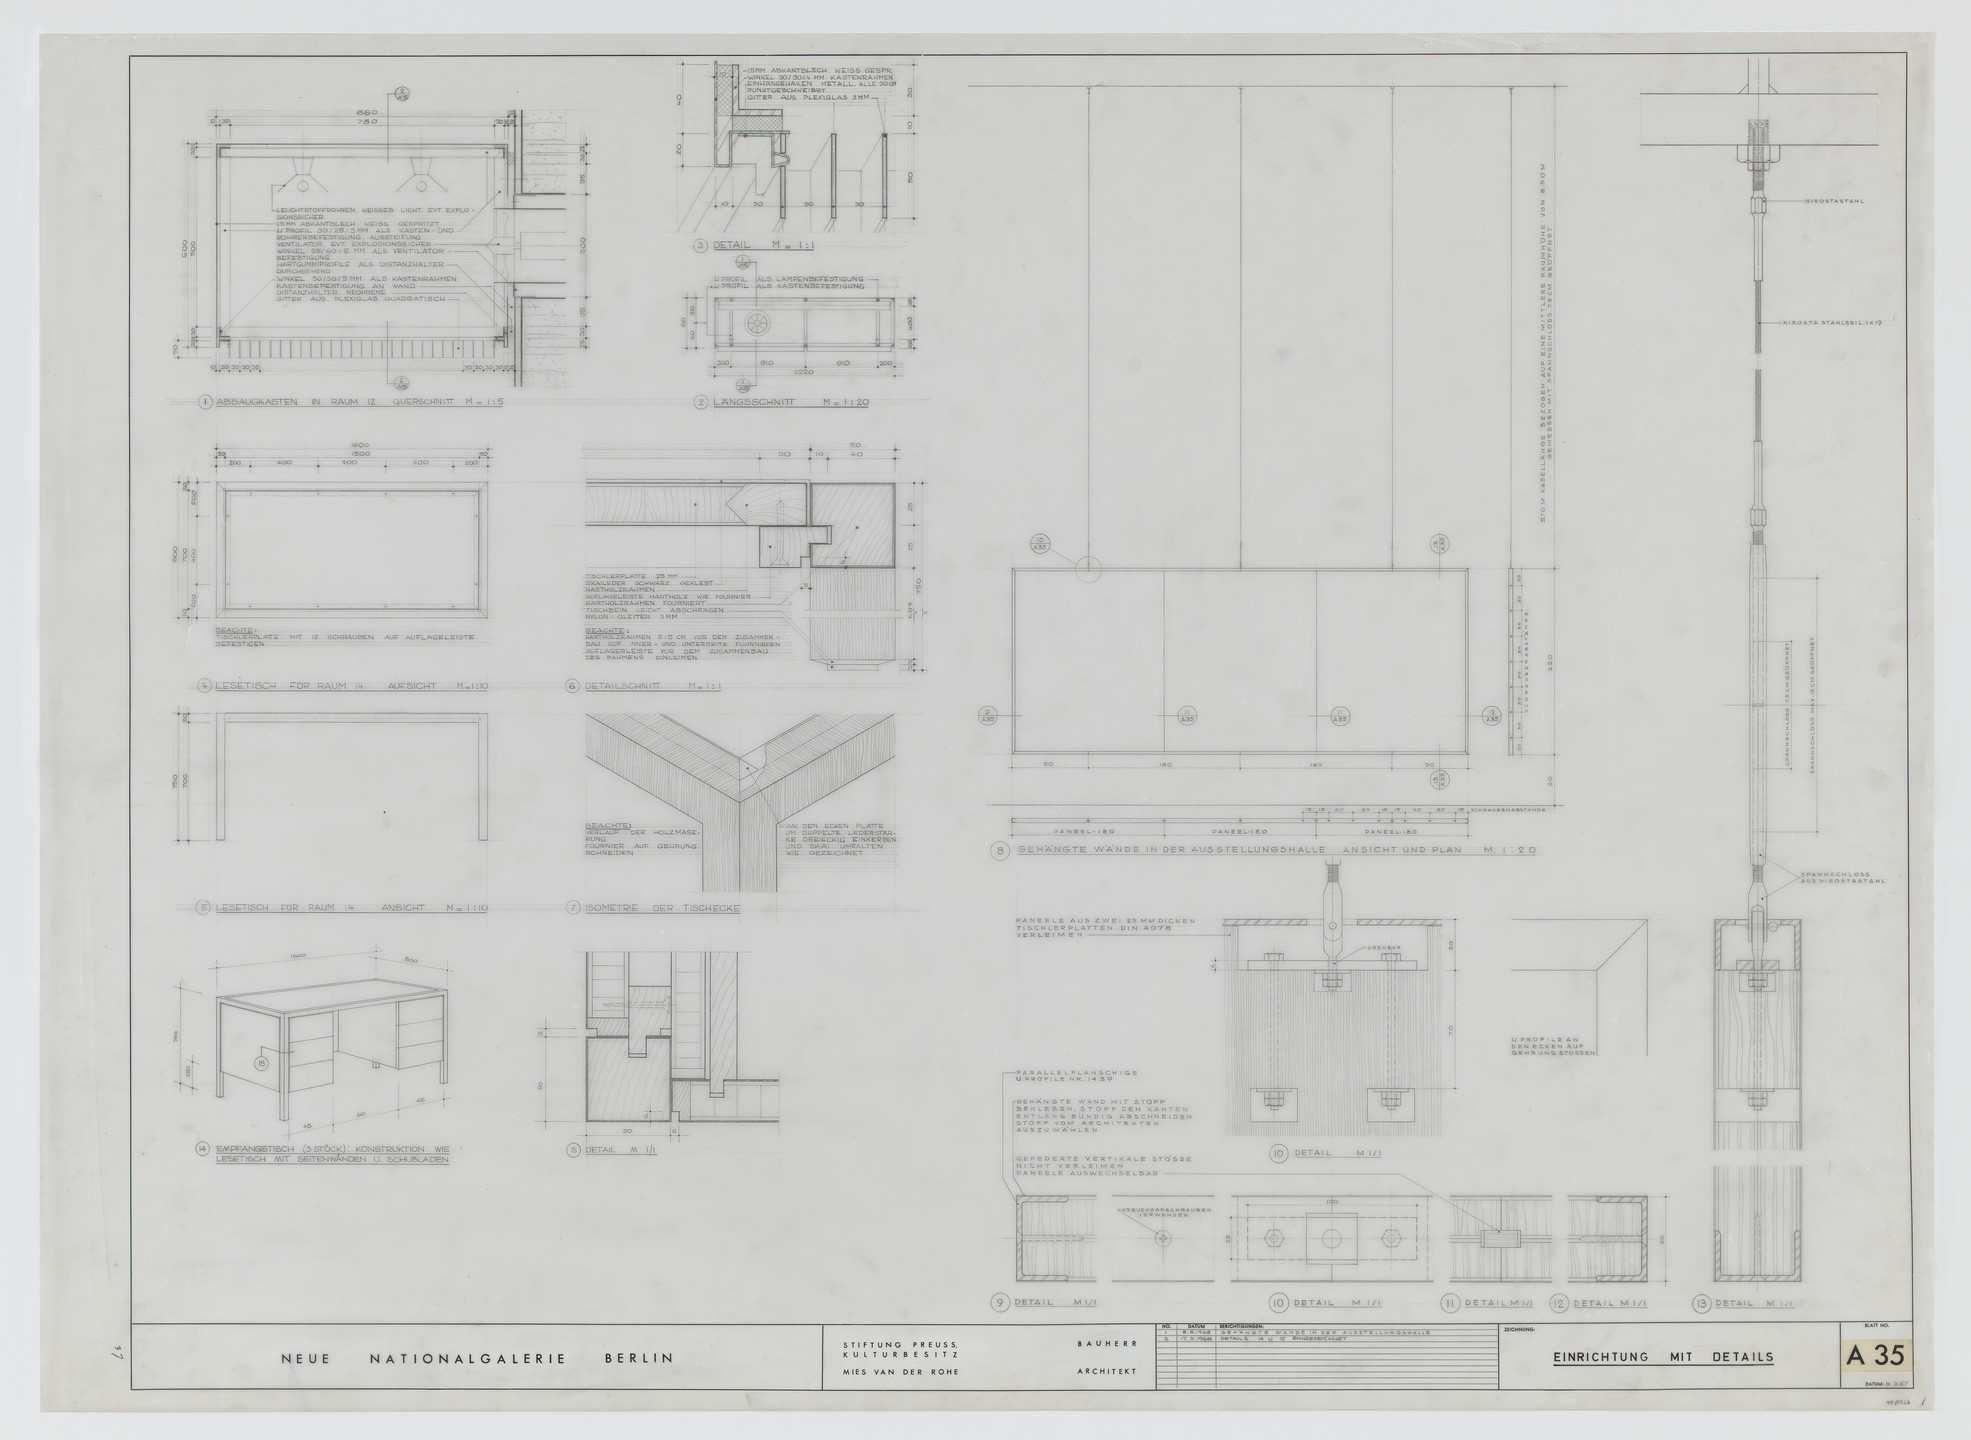 Ludwig Mies van der Rohe. New National Gallery, Berlin, Germany (Plans, elevation, sections, perspective and isometric view. Furnishings with details.). 1968